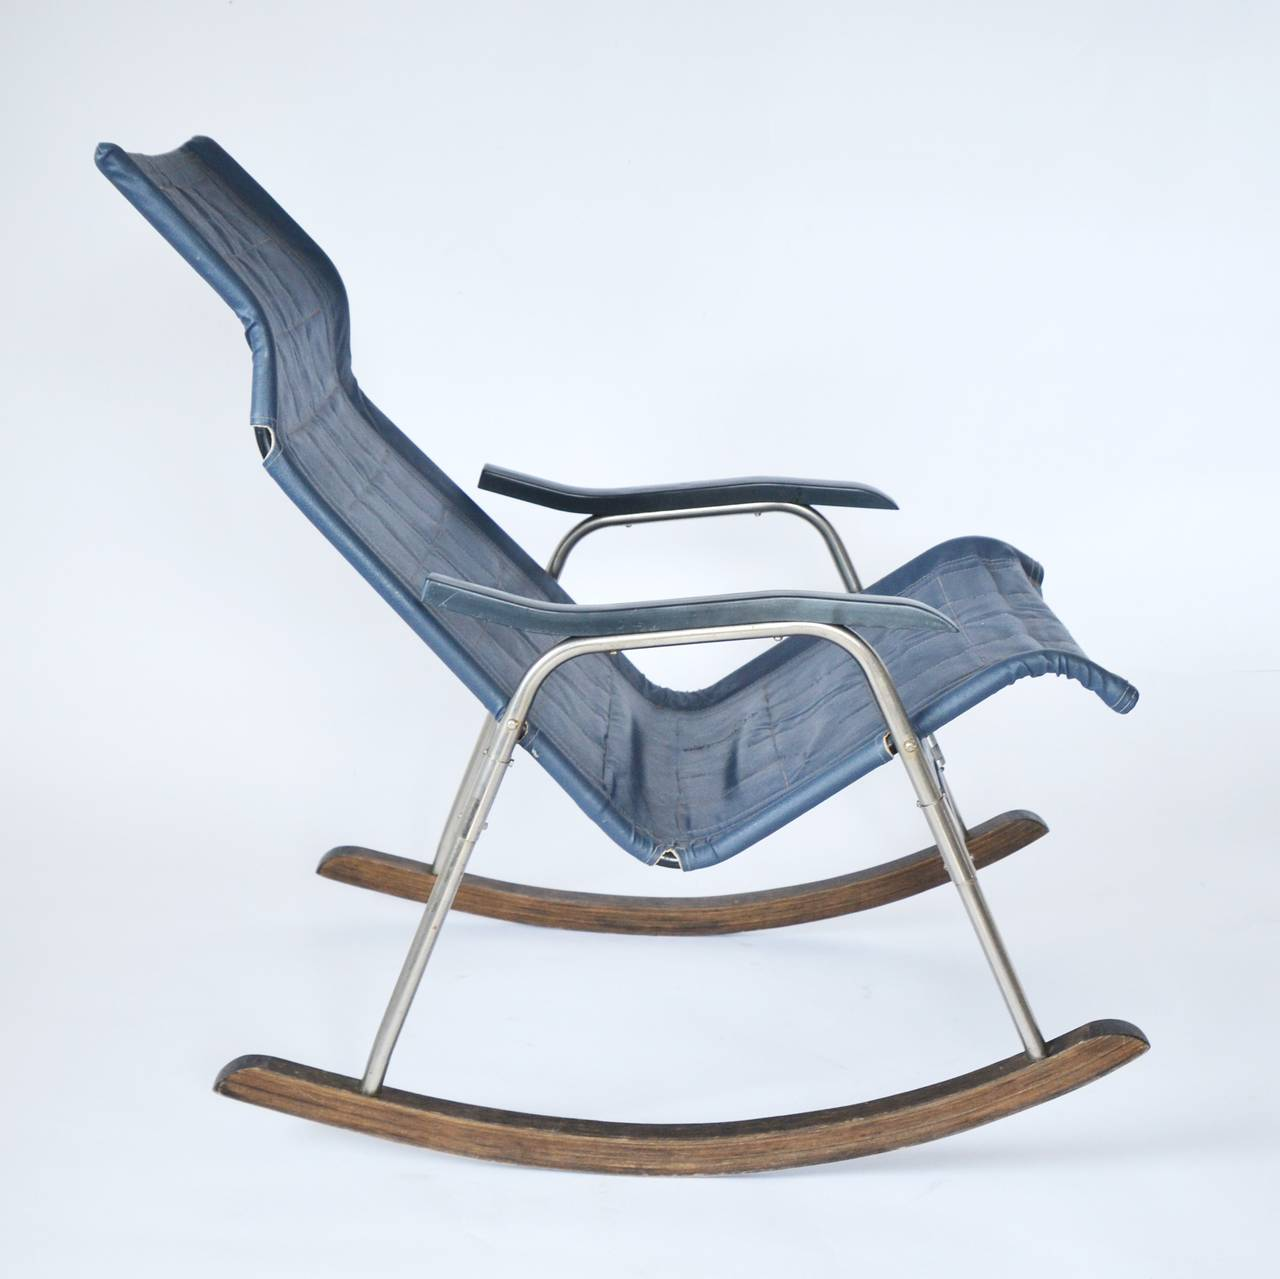 Rocking Chair, Foldable, 1970s For Sale at 1stdibs